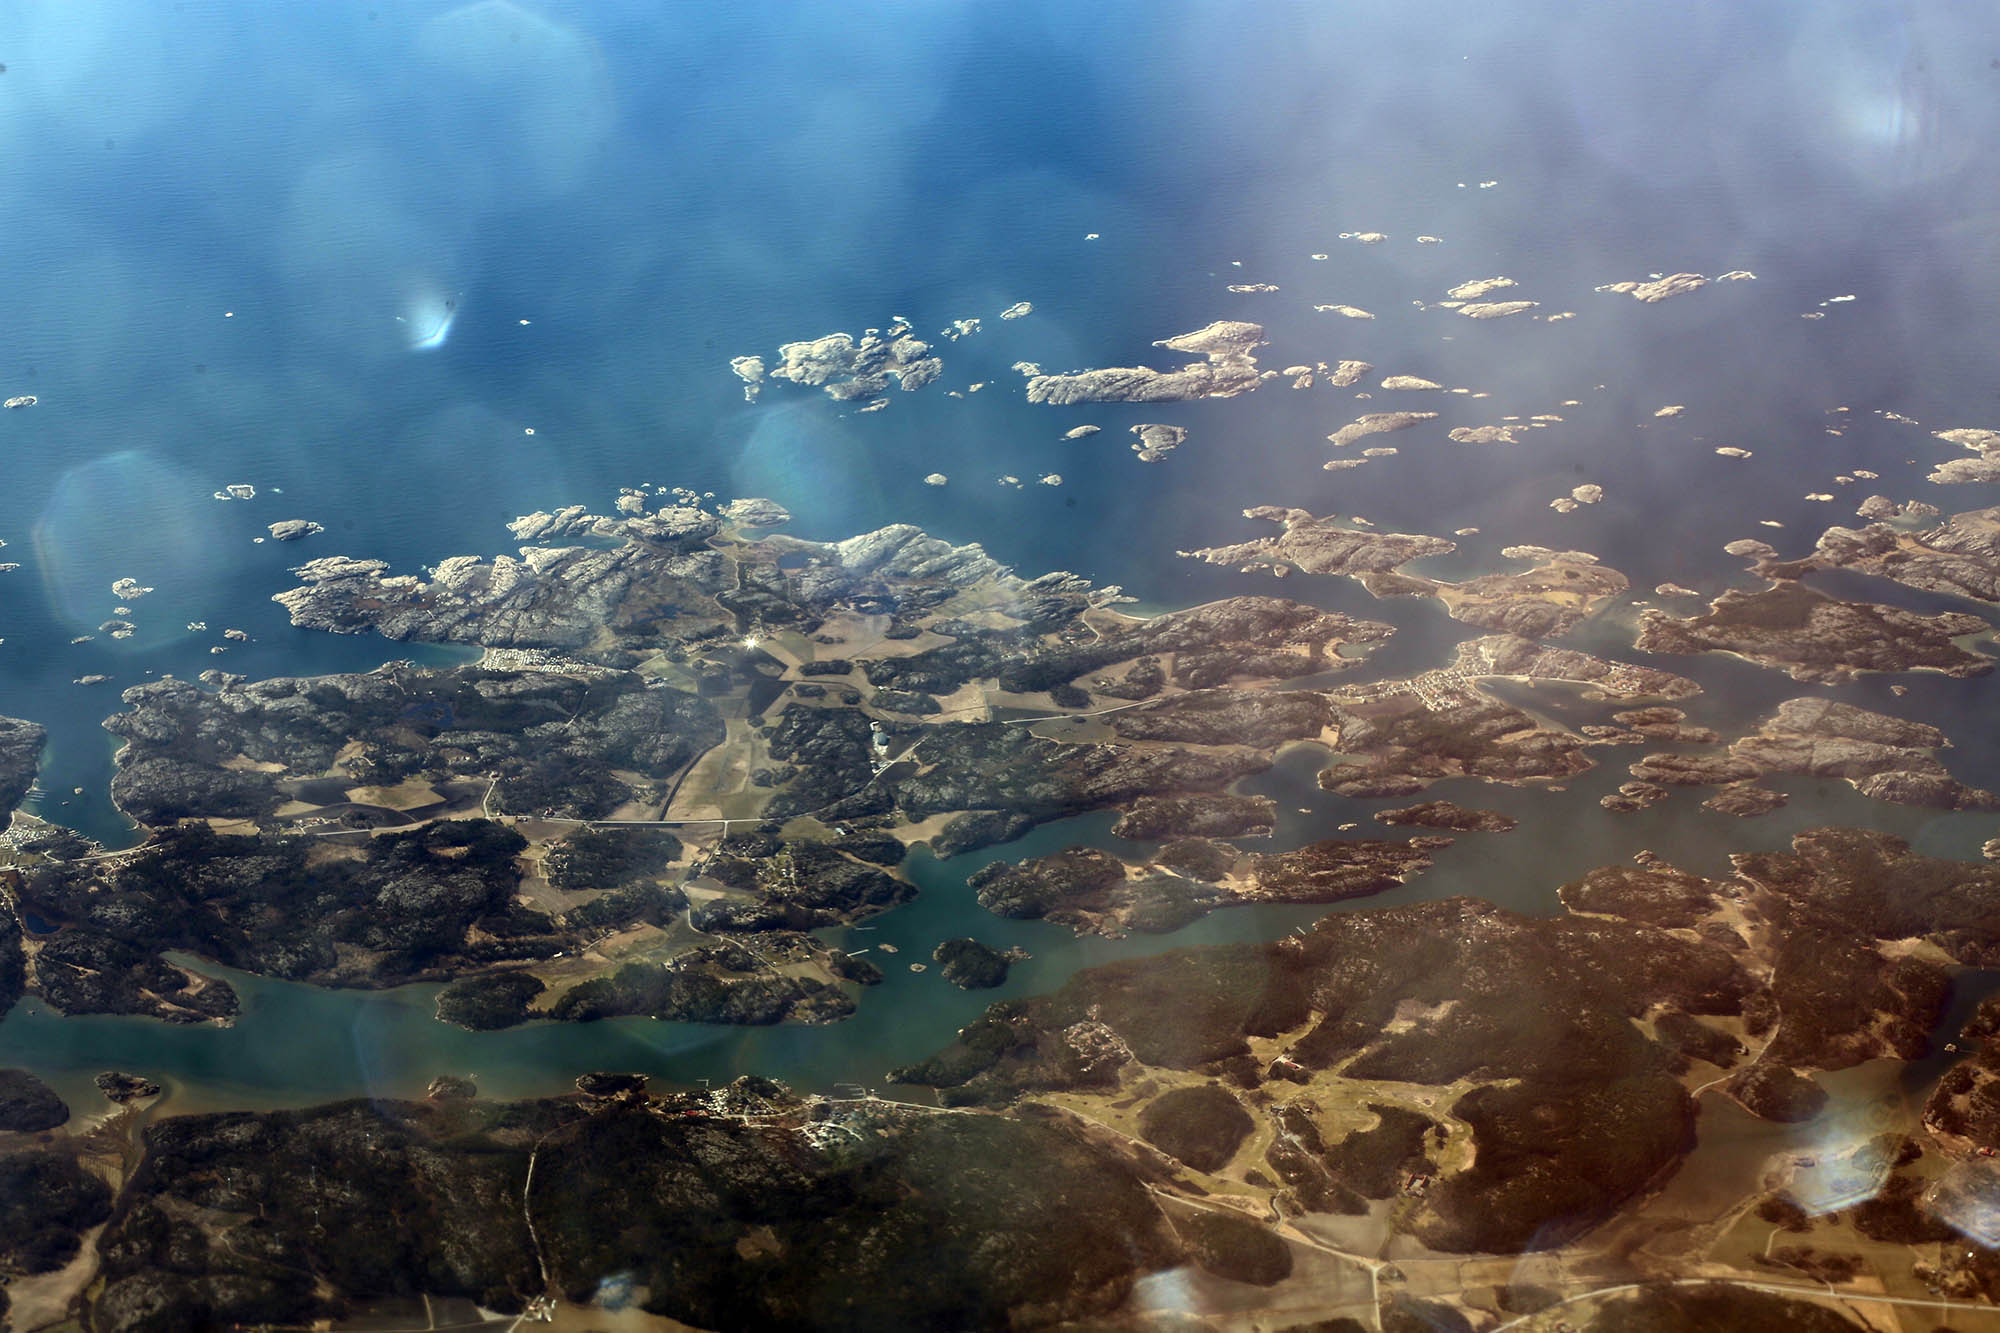 A view of the fjords from above